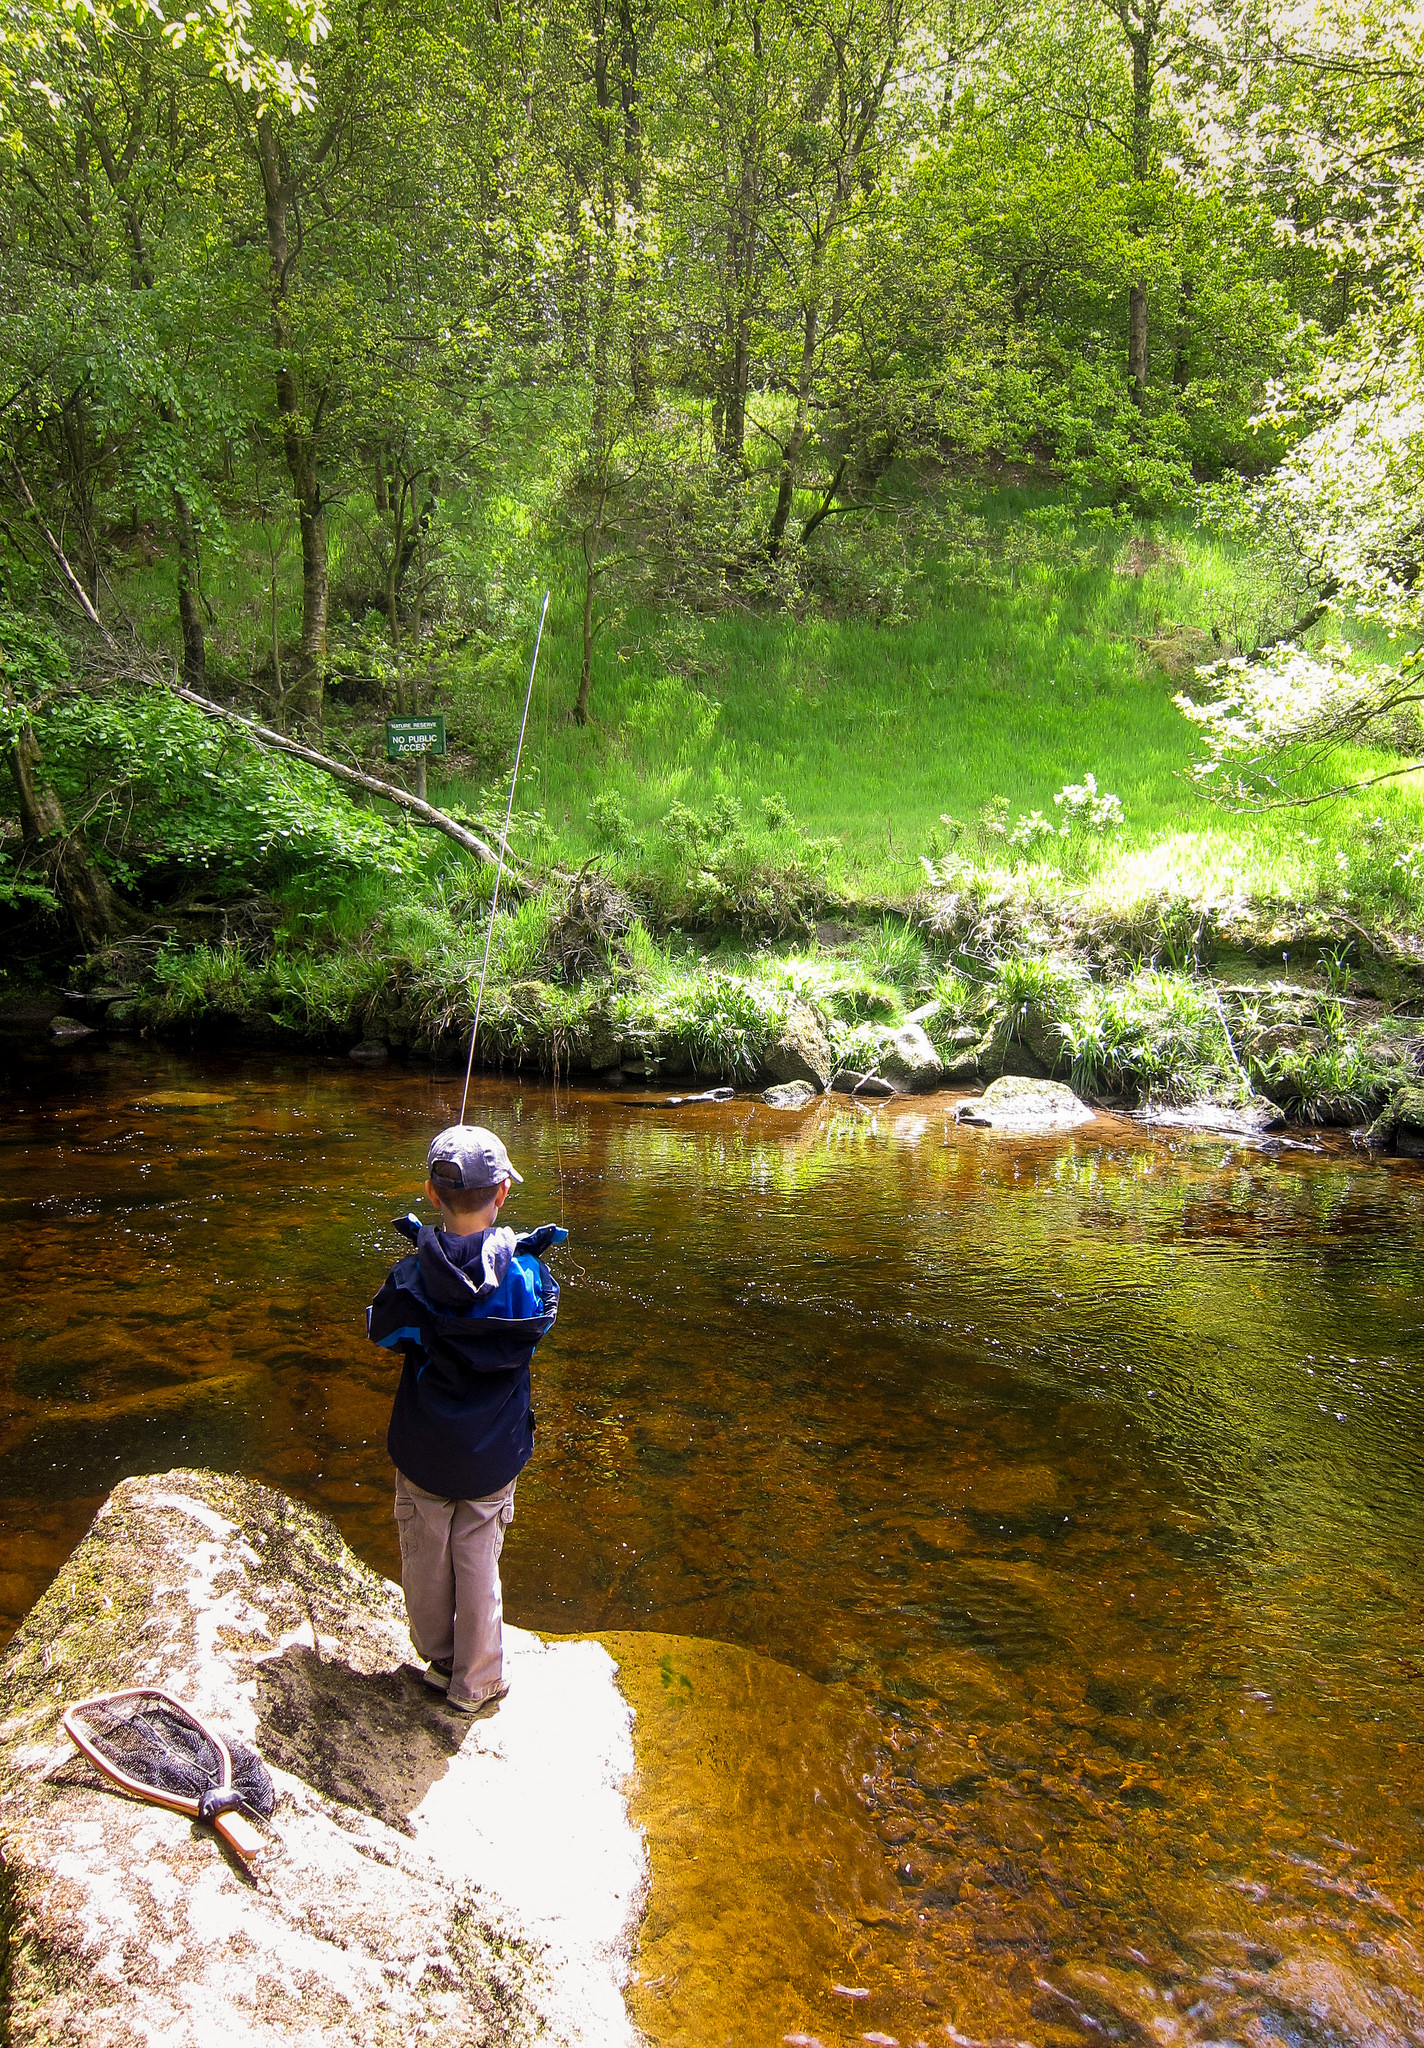 My son Zachary fishing Hebden Water in Hardcastle Crags